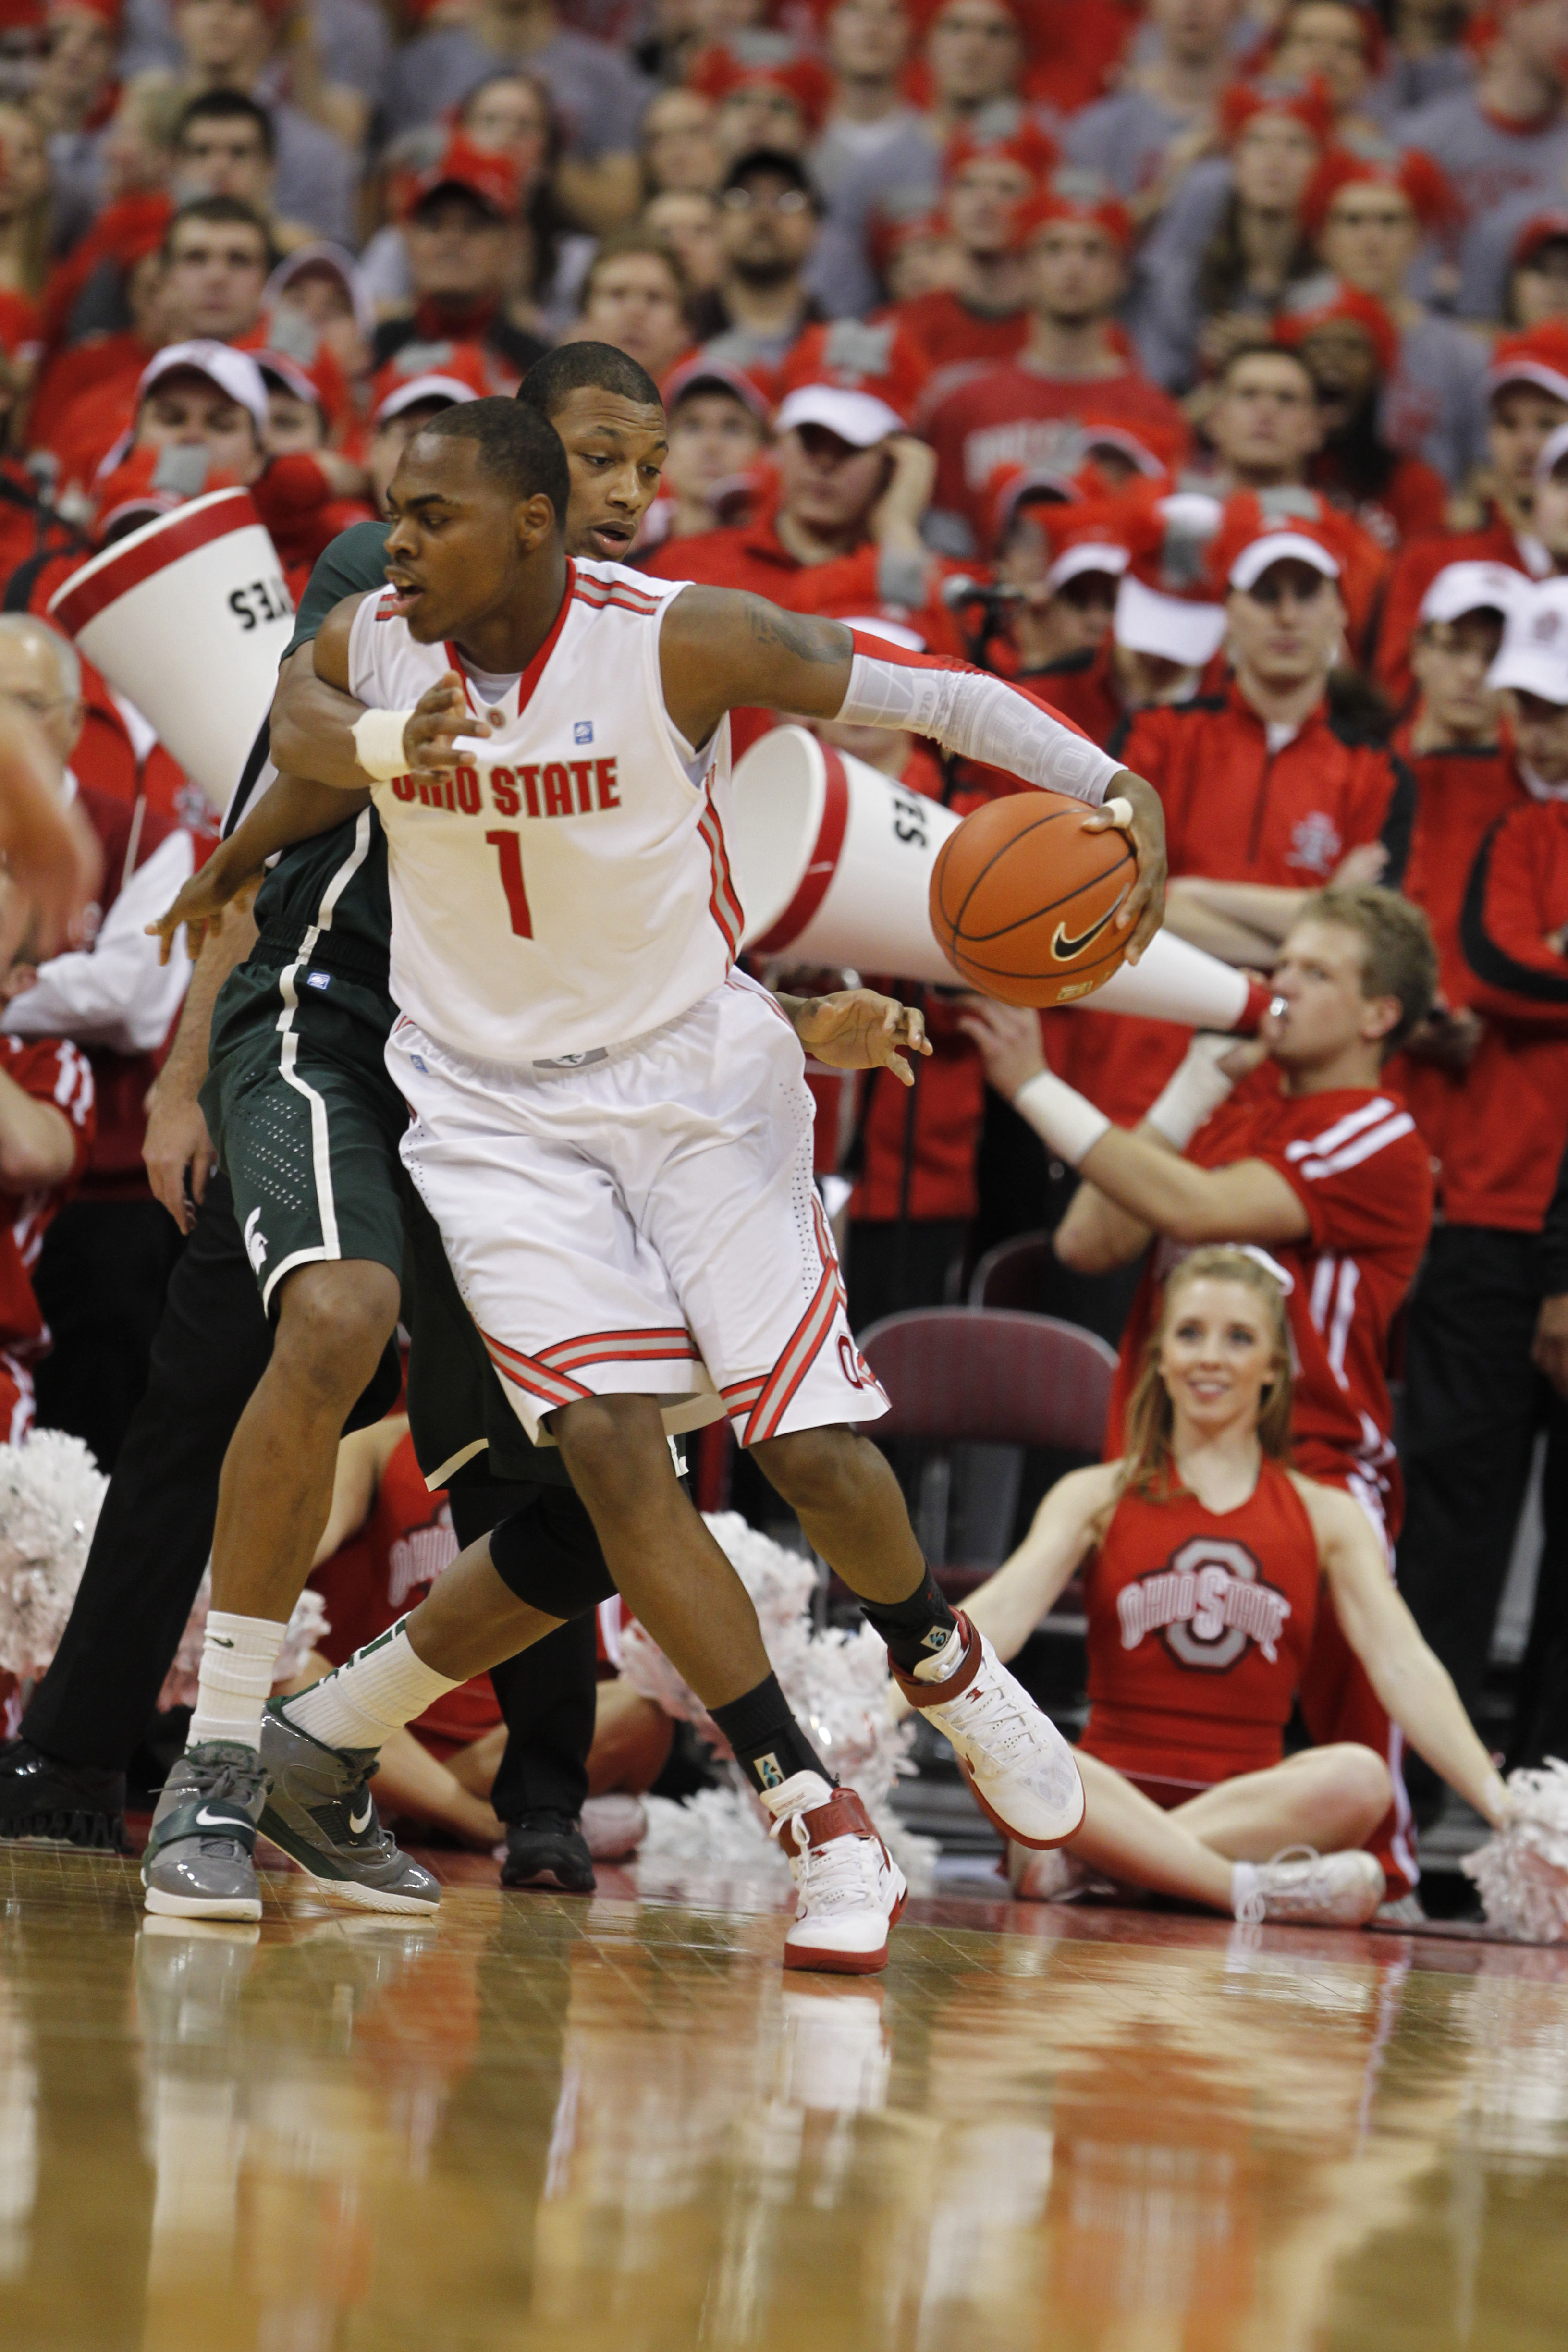 COLUMBUS, OH - FEBRUARY 15:  Deshaun Thomas #1 of the Ohio State Buckeyes controls the ball while playing the Michigan State Spartans on February 15, 2011 at Value City Arena in Columbus, Ohio.  (Photo by Gregory Shamus/Getty Images)